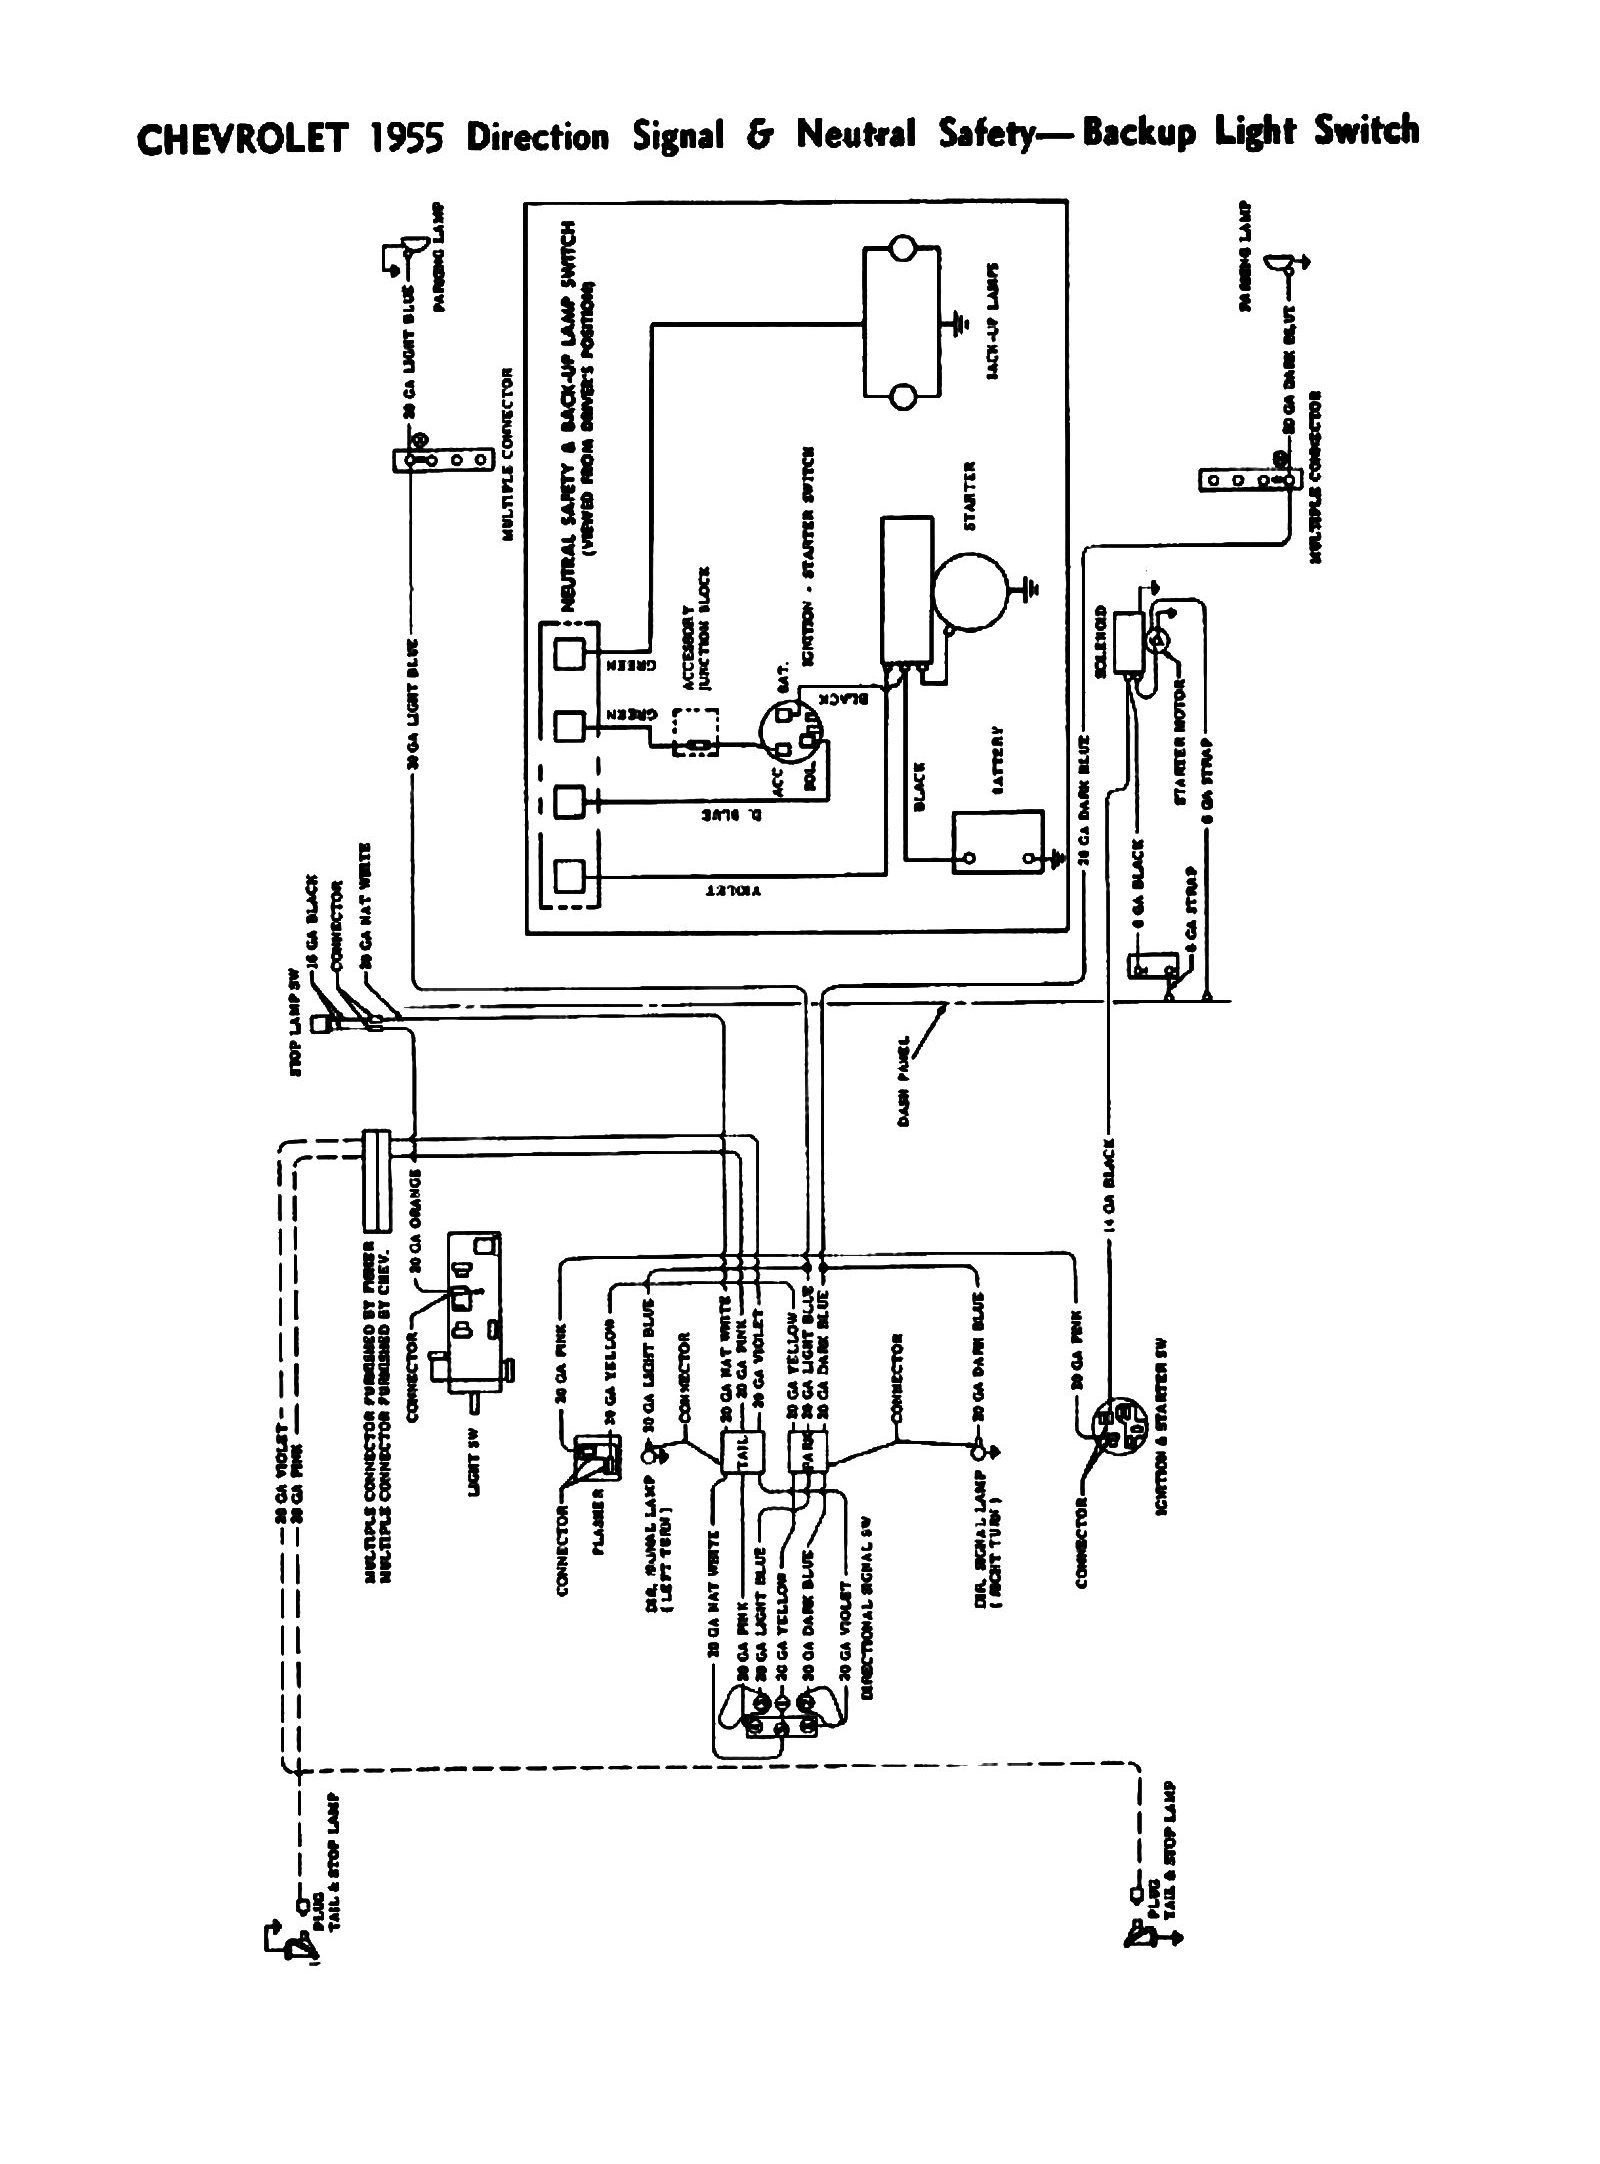 55 willys jeep wiring diagram 1955 chevy turn signal switch wiring diagram wiring diagrams  1955 chevy turn signal switch wiring